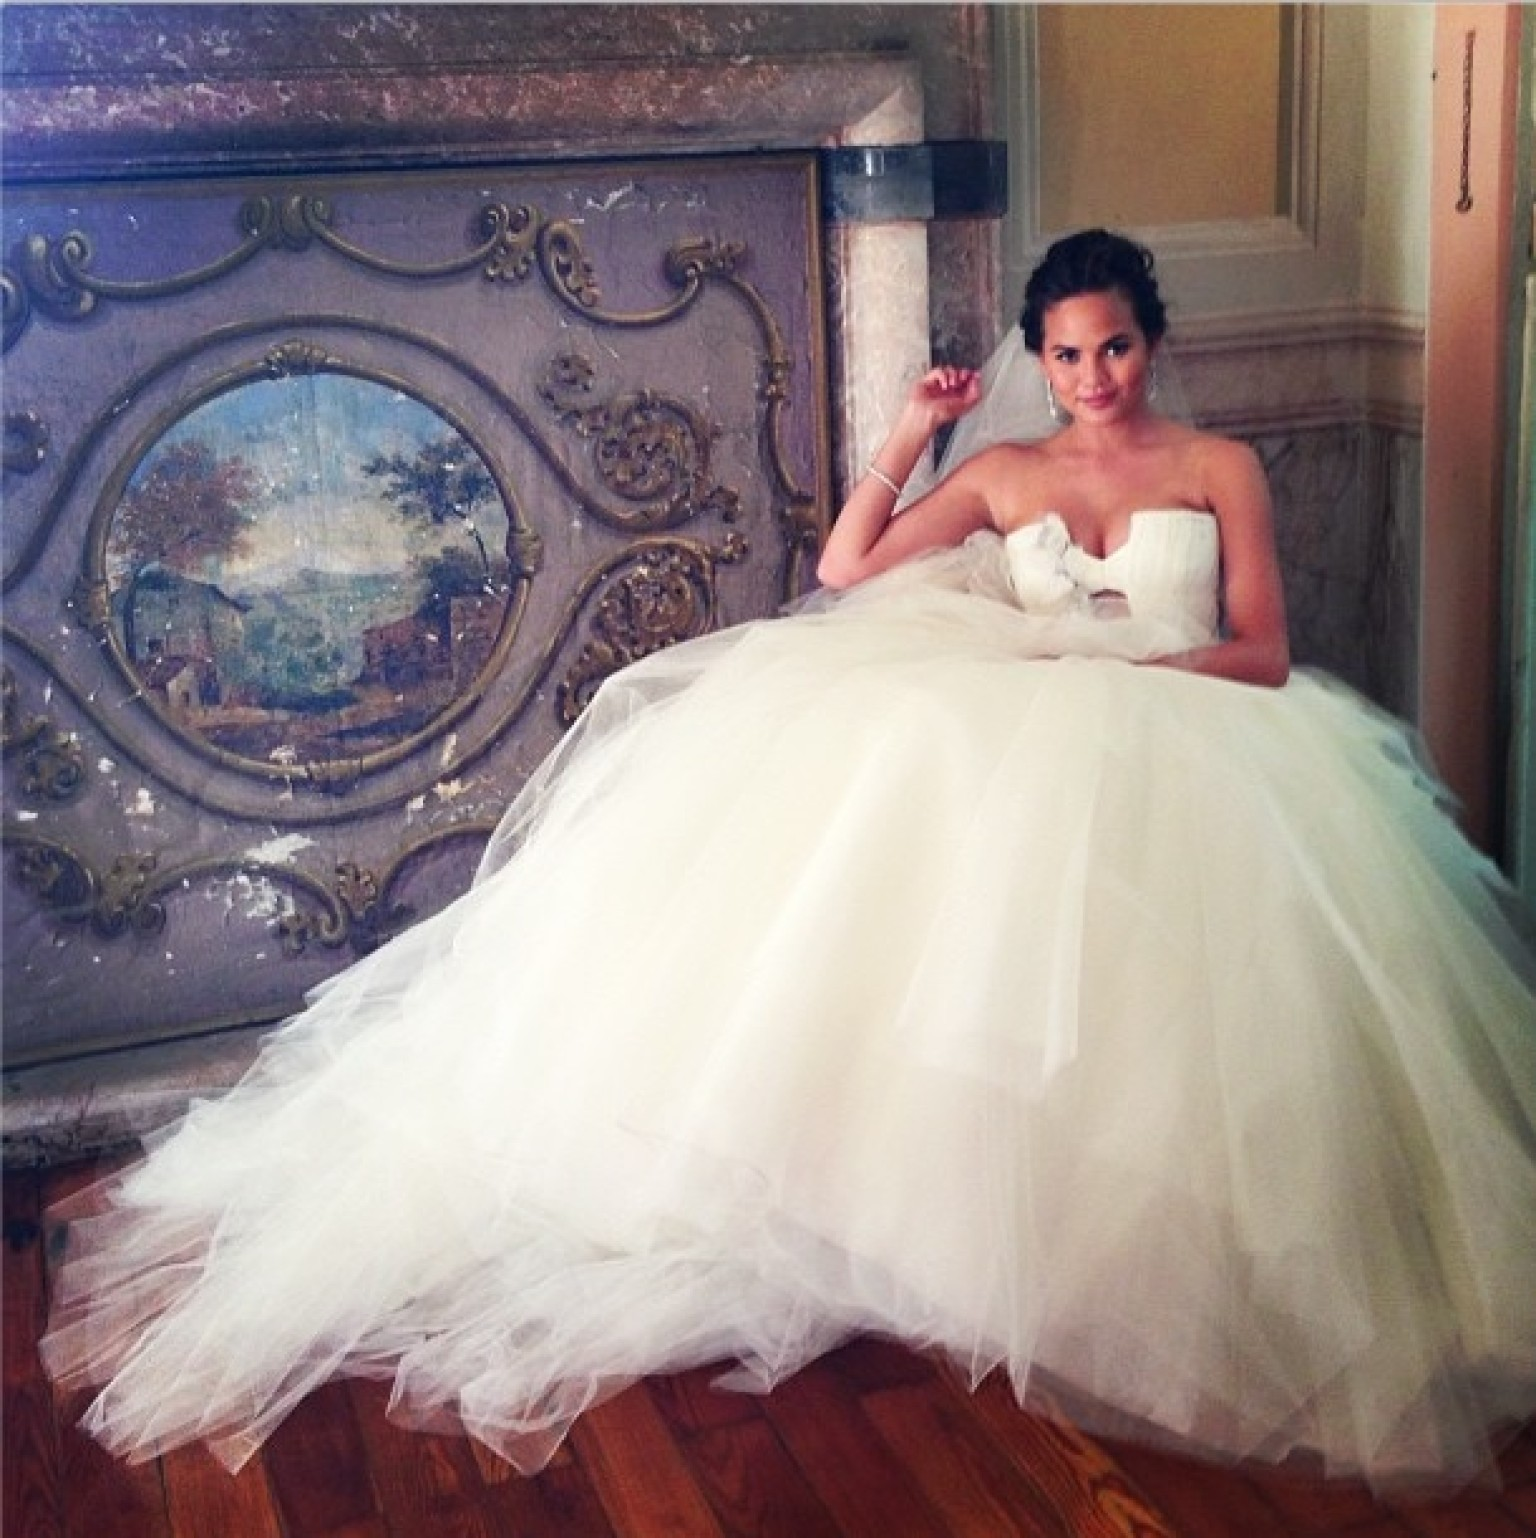 Chrissy Teigen's Wedding Dress Is Fit For A Princess ...